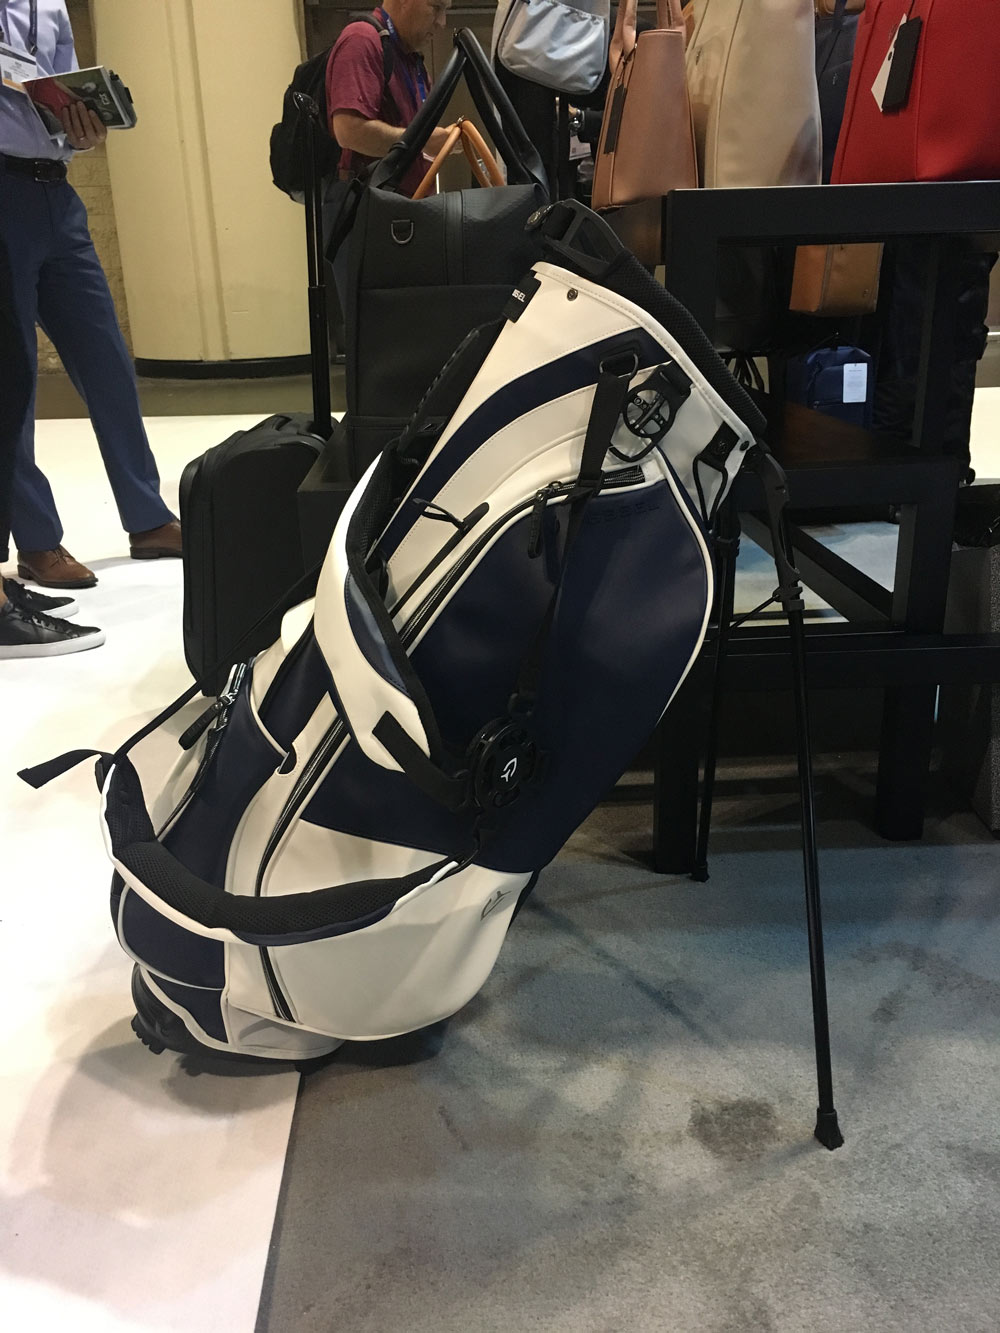 Vessel's Player Stand Bag is fully customizable with a click of your mouse on vesselbags.com. $290-$377.